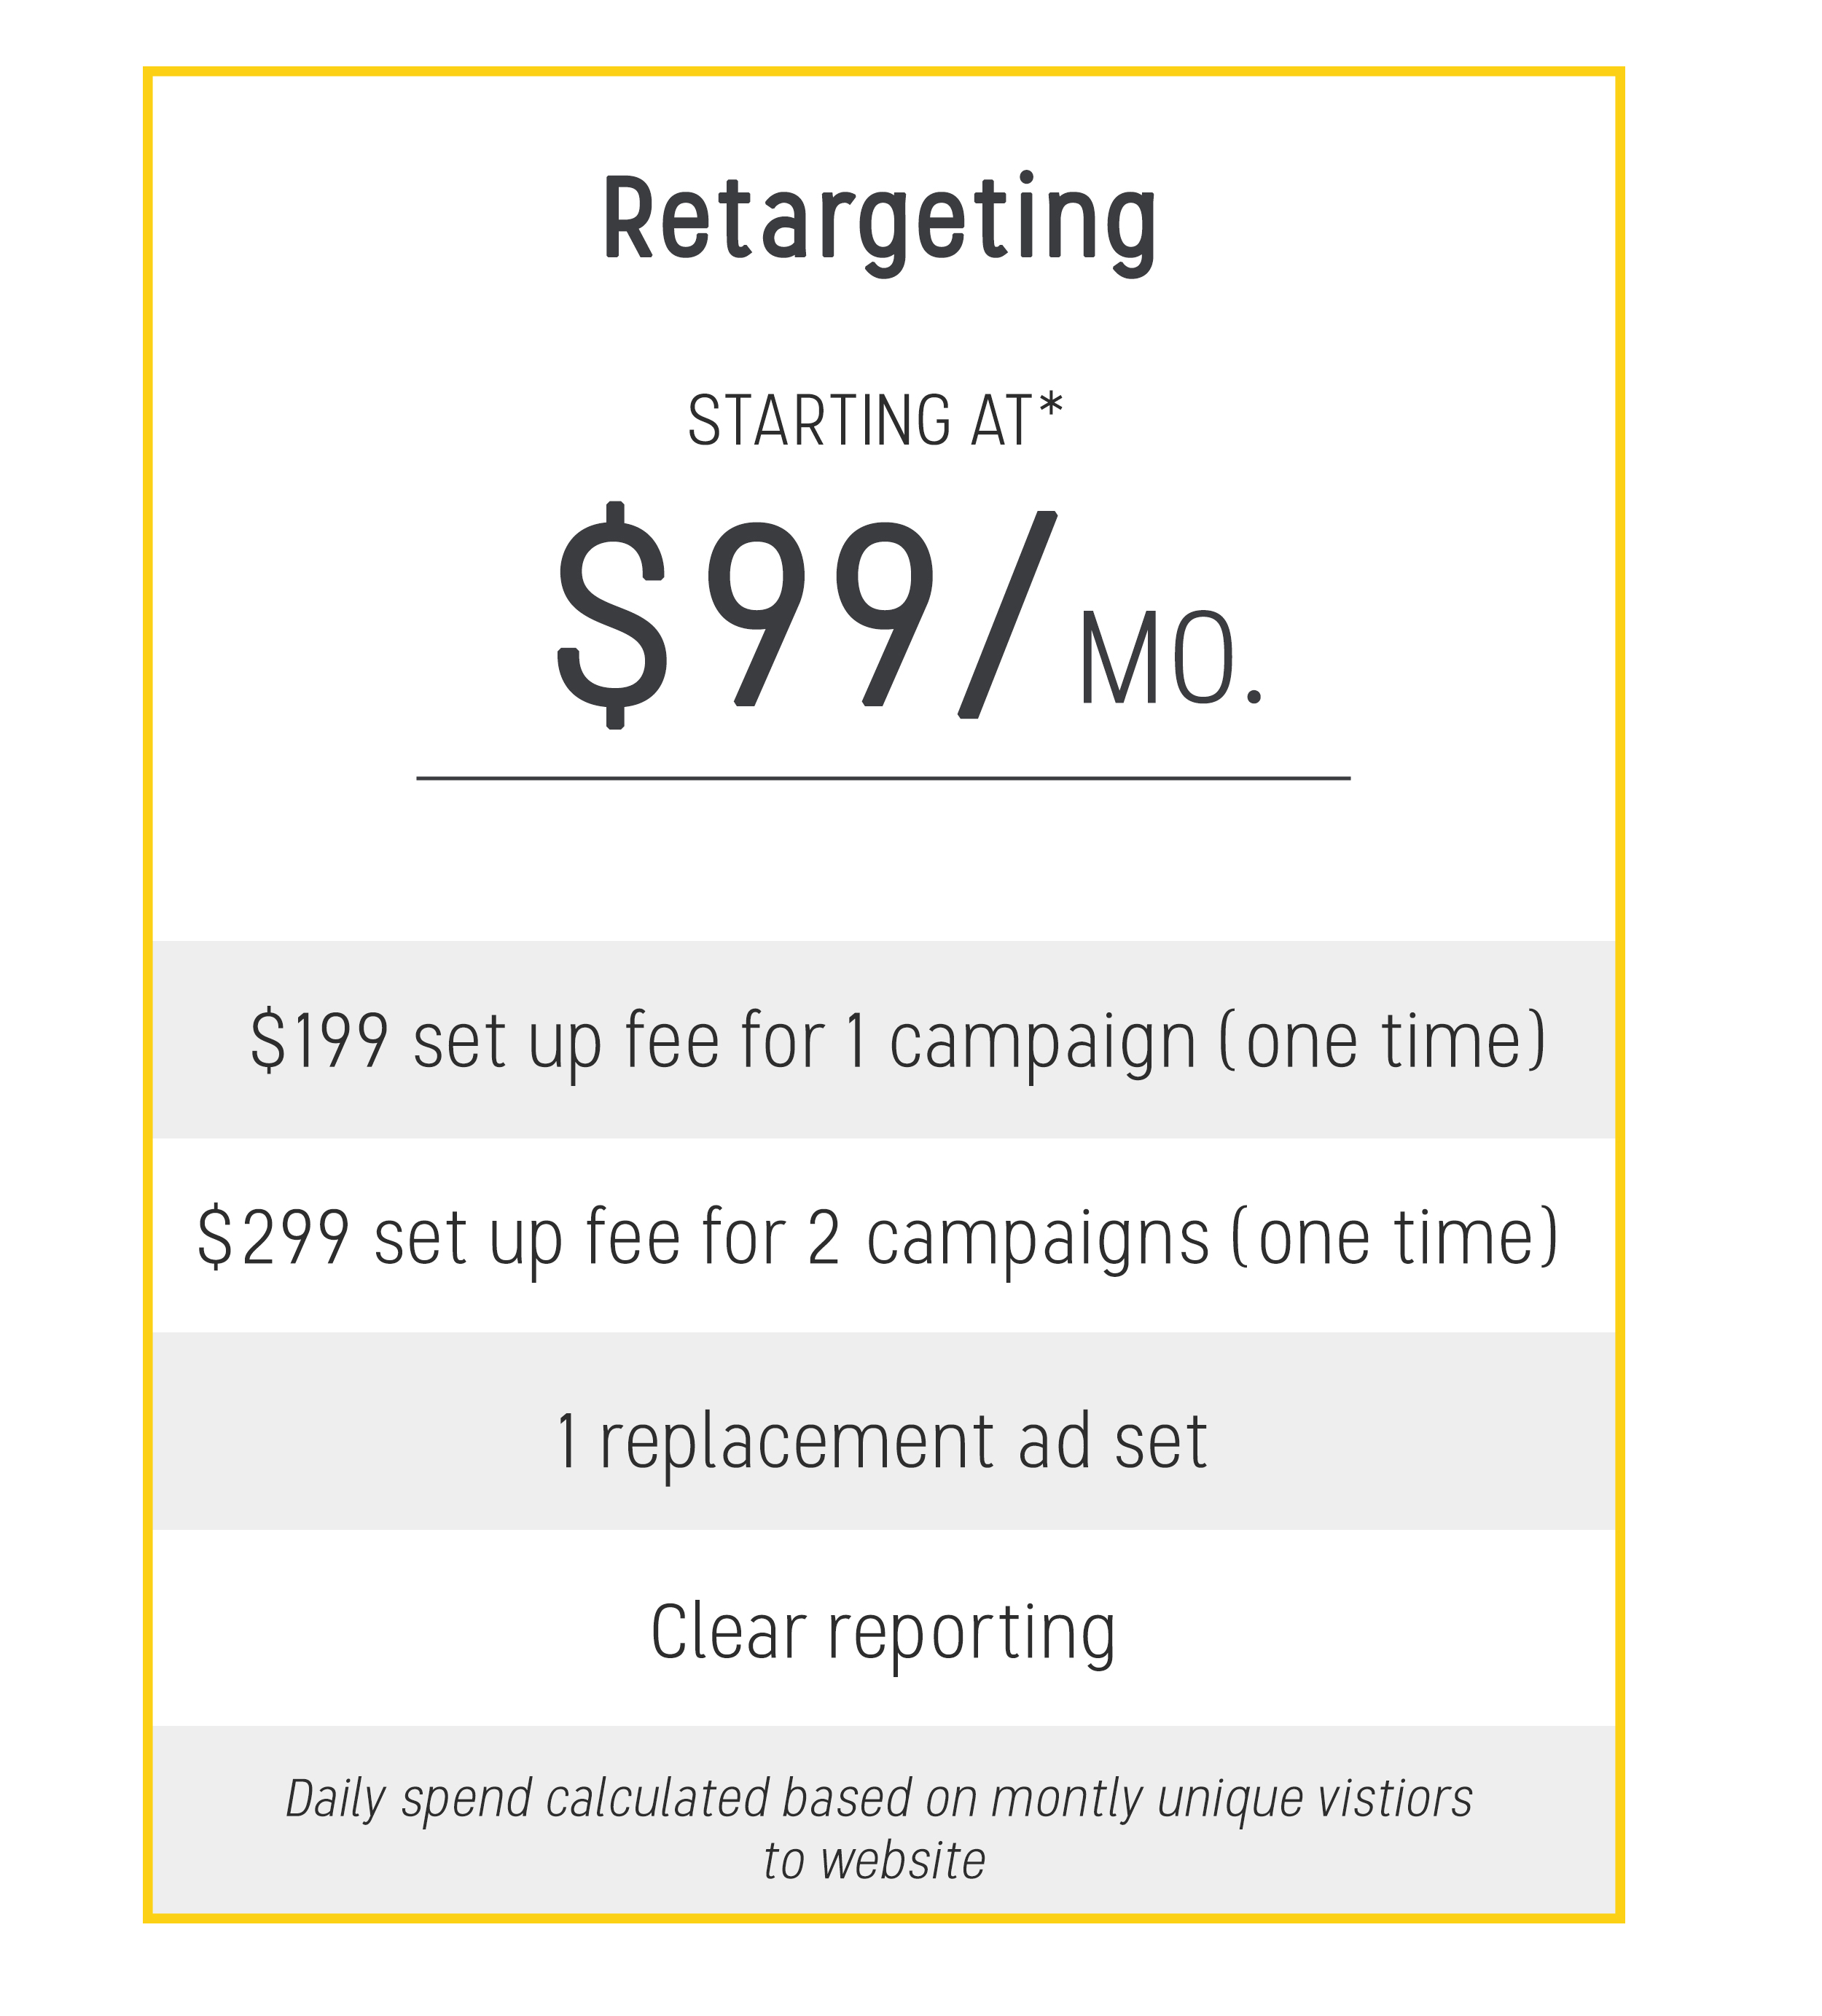 Retargeting PRICING.jpg